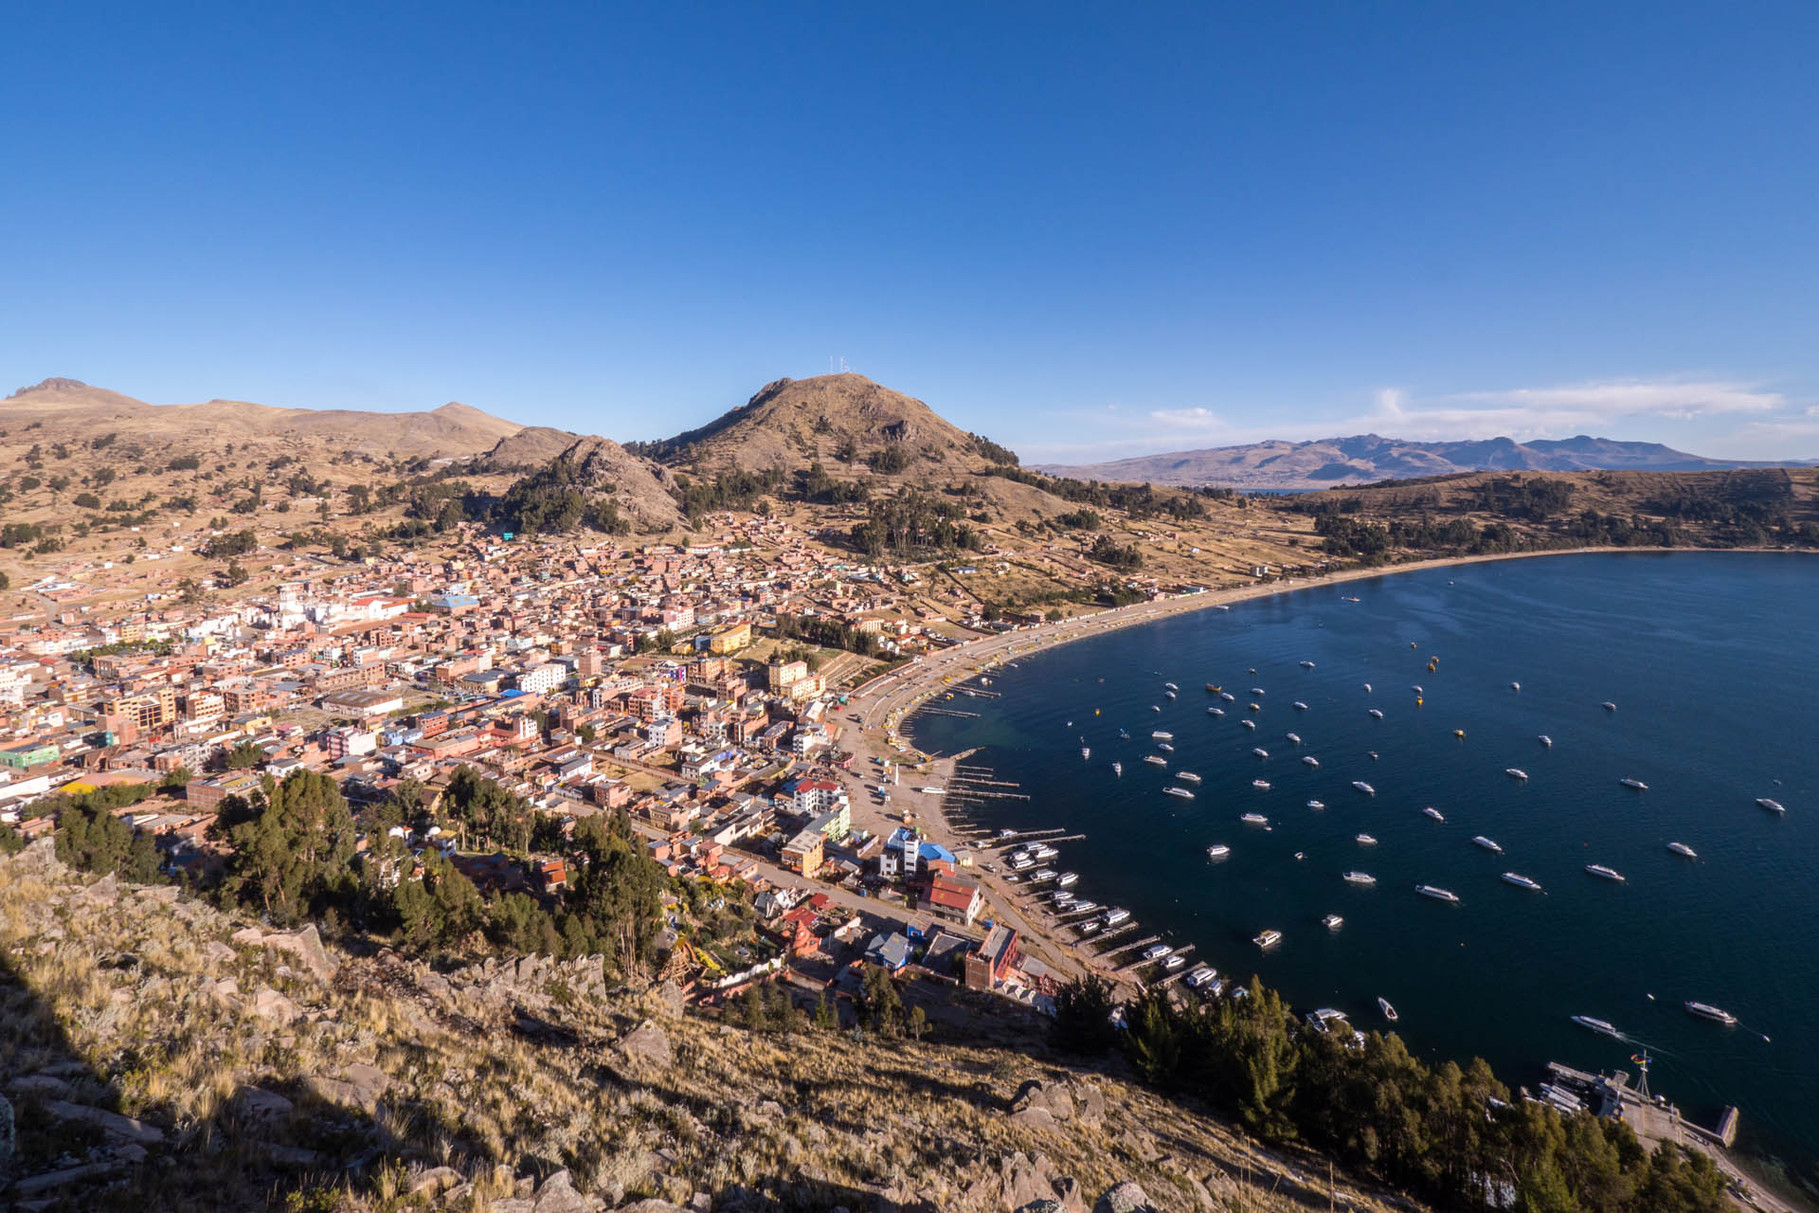 Copacabana at Lake Titicaca (3840masl)